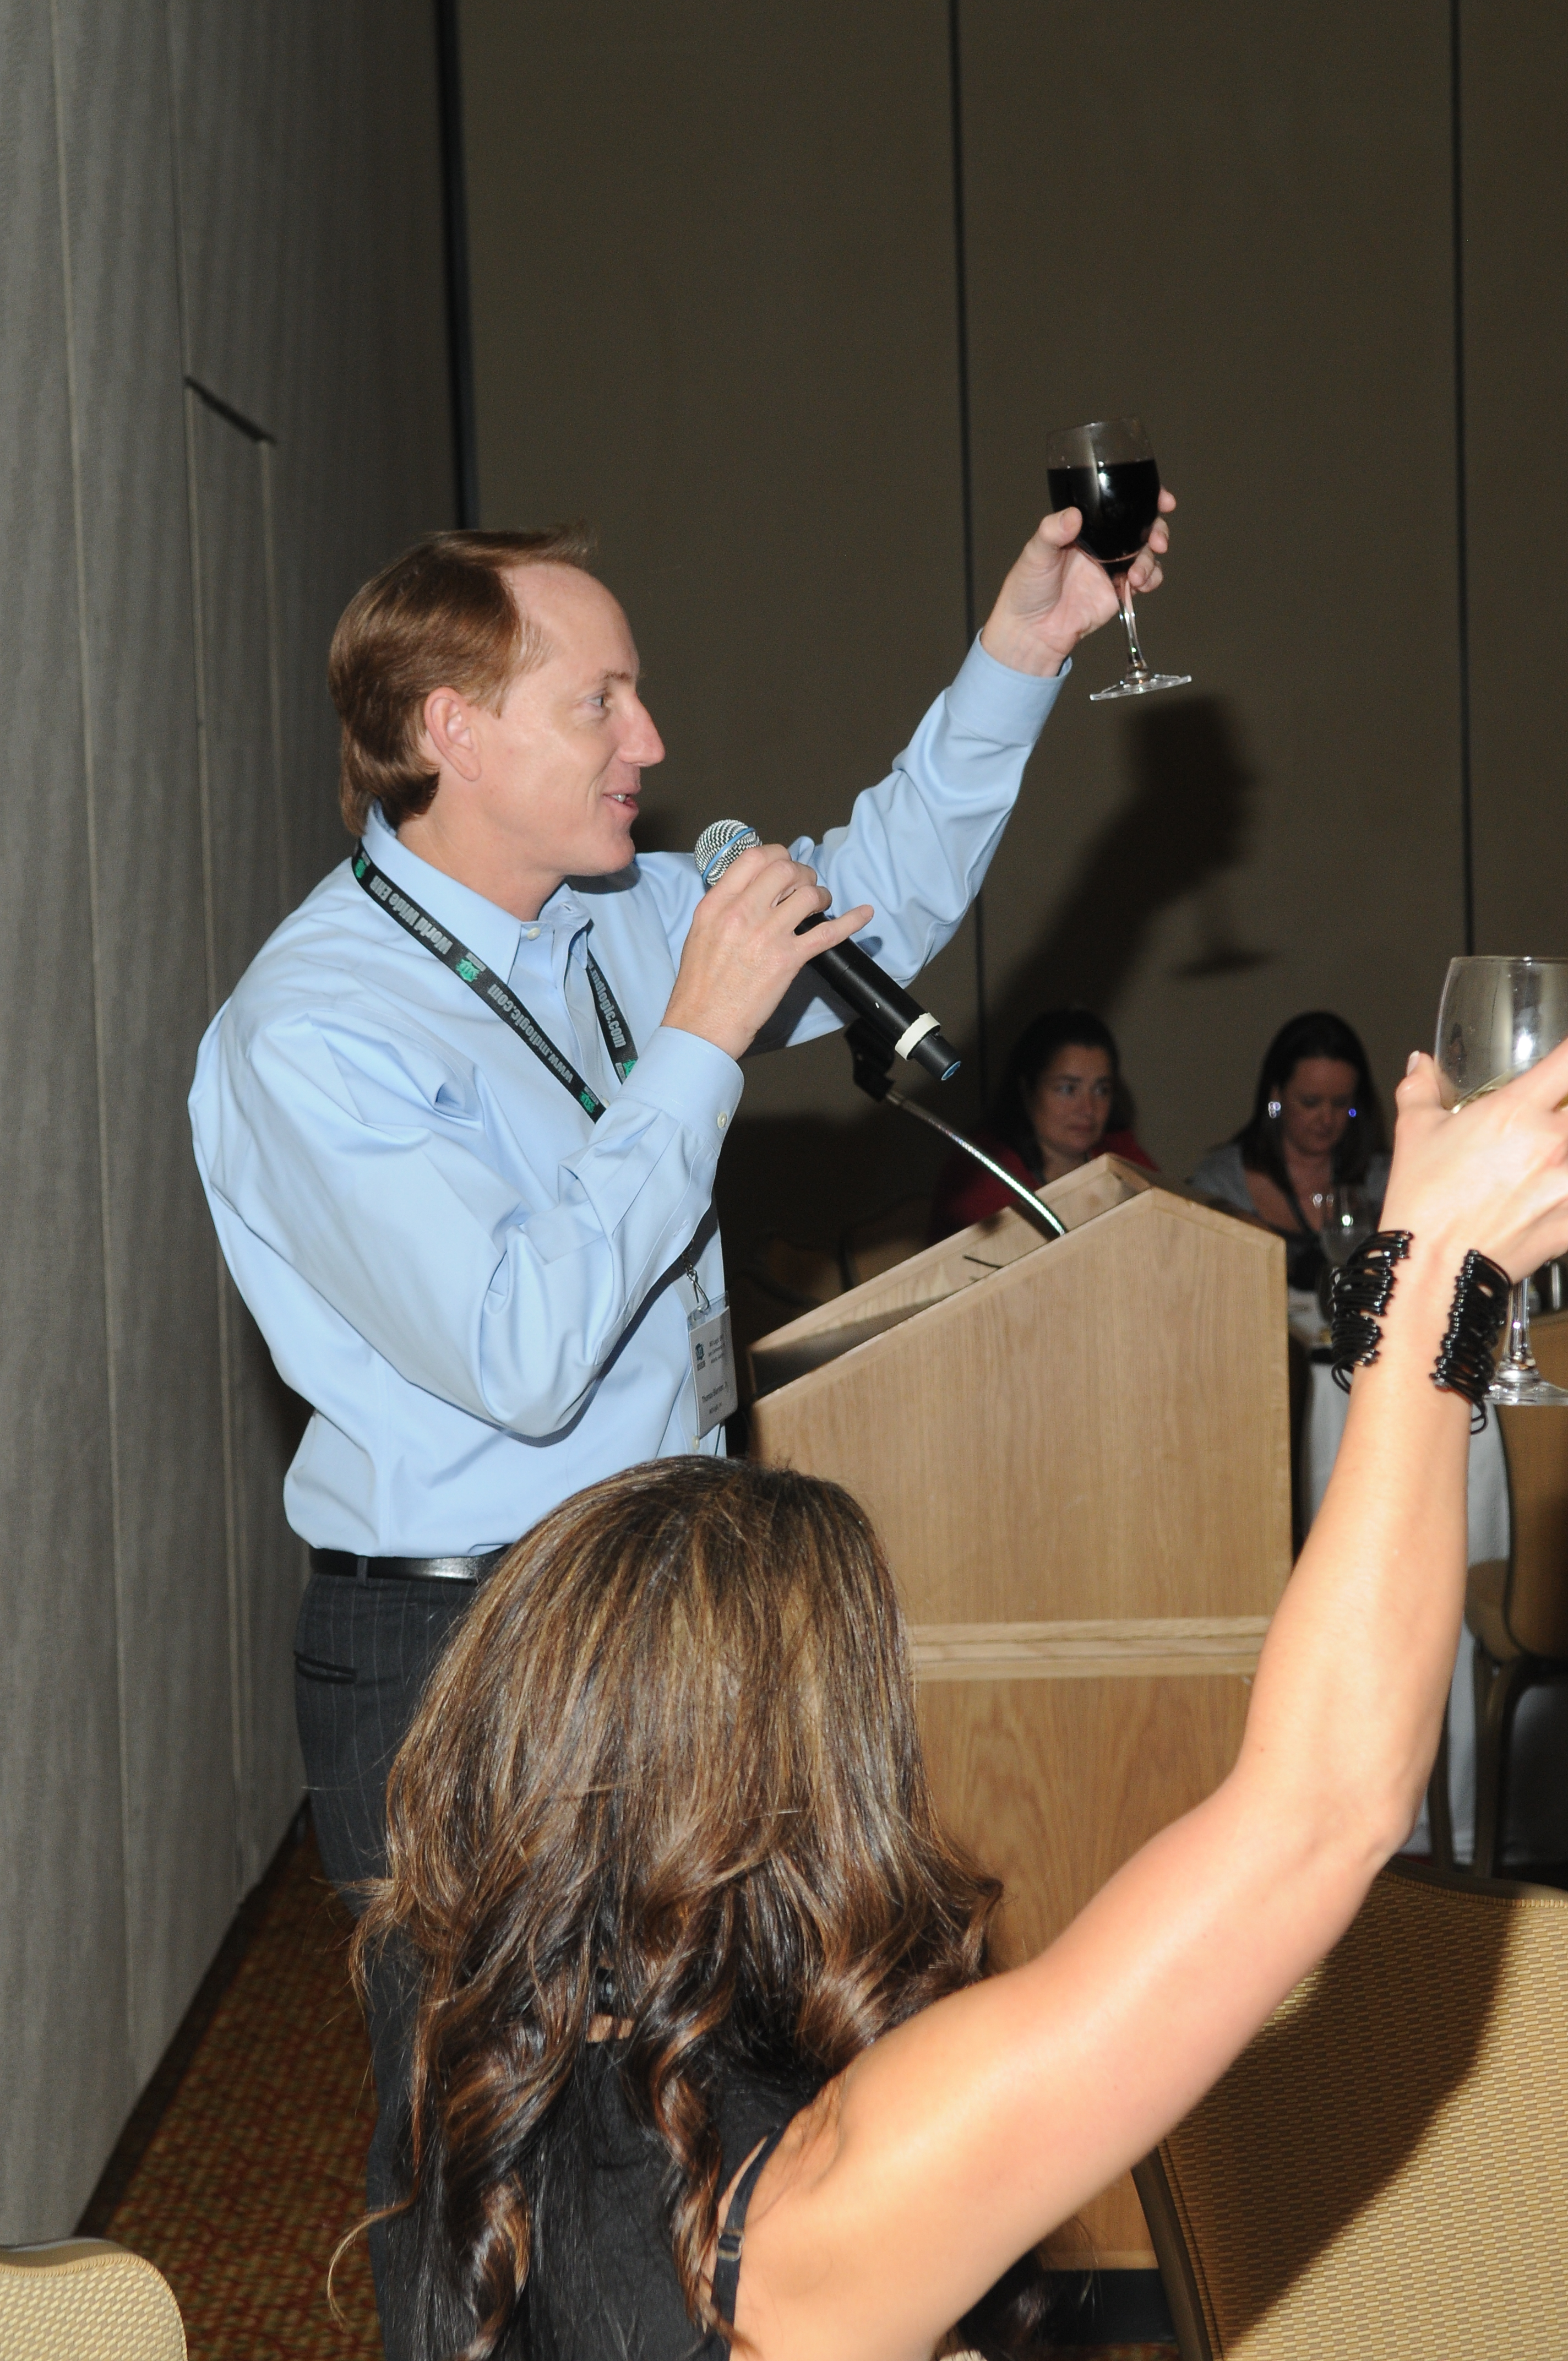 MD Logic CEO Toasts to Welcome Customers   MD Logic